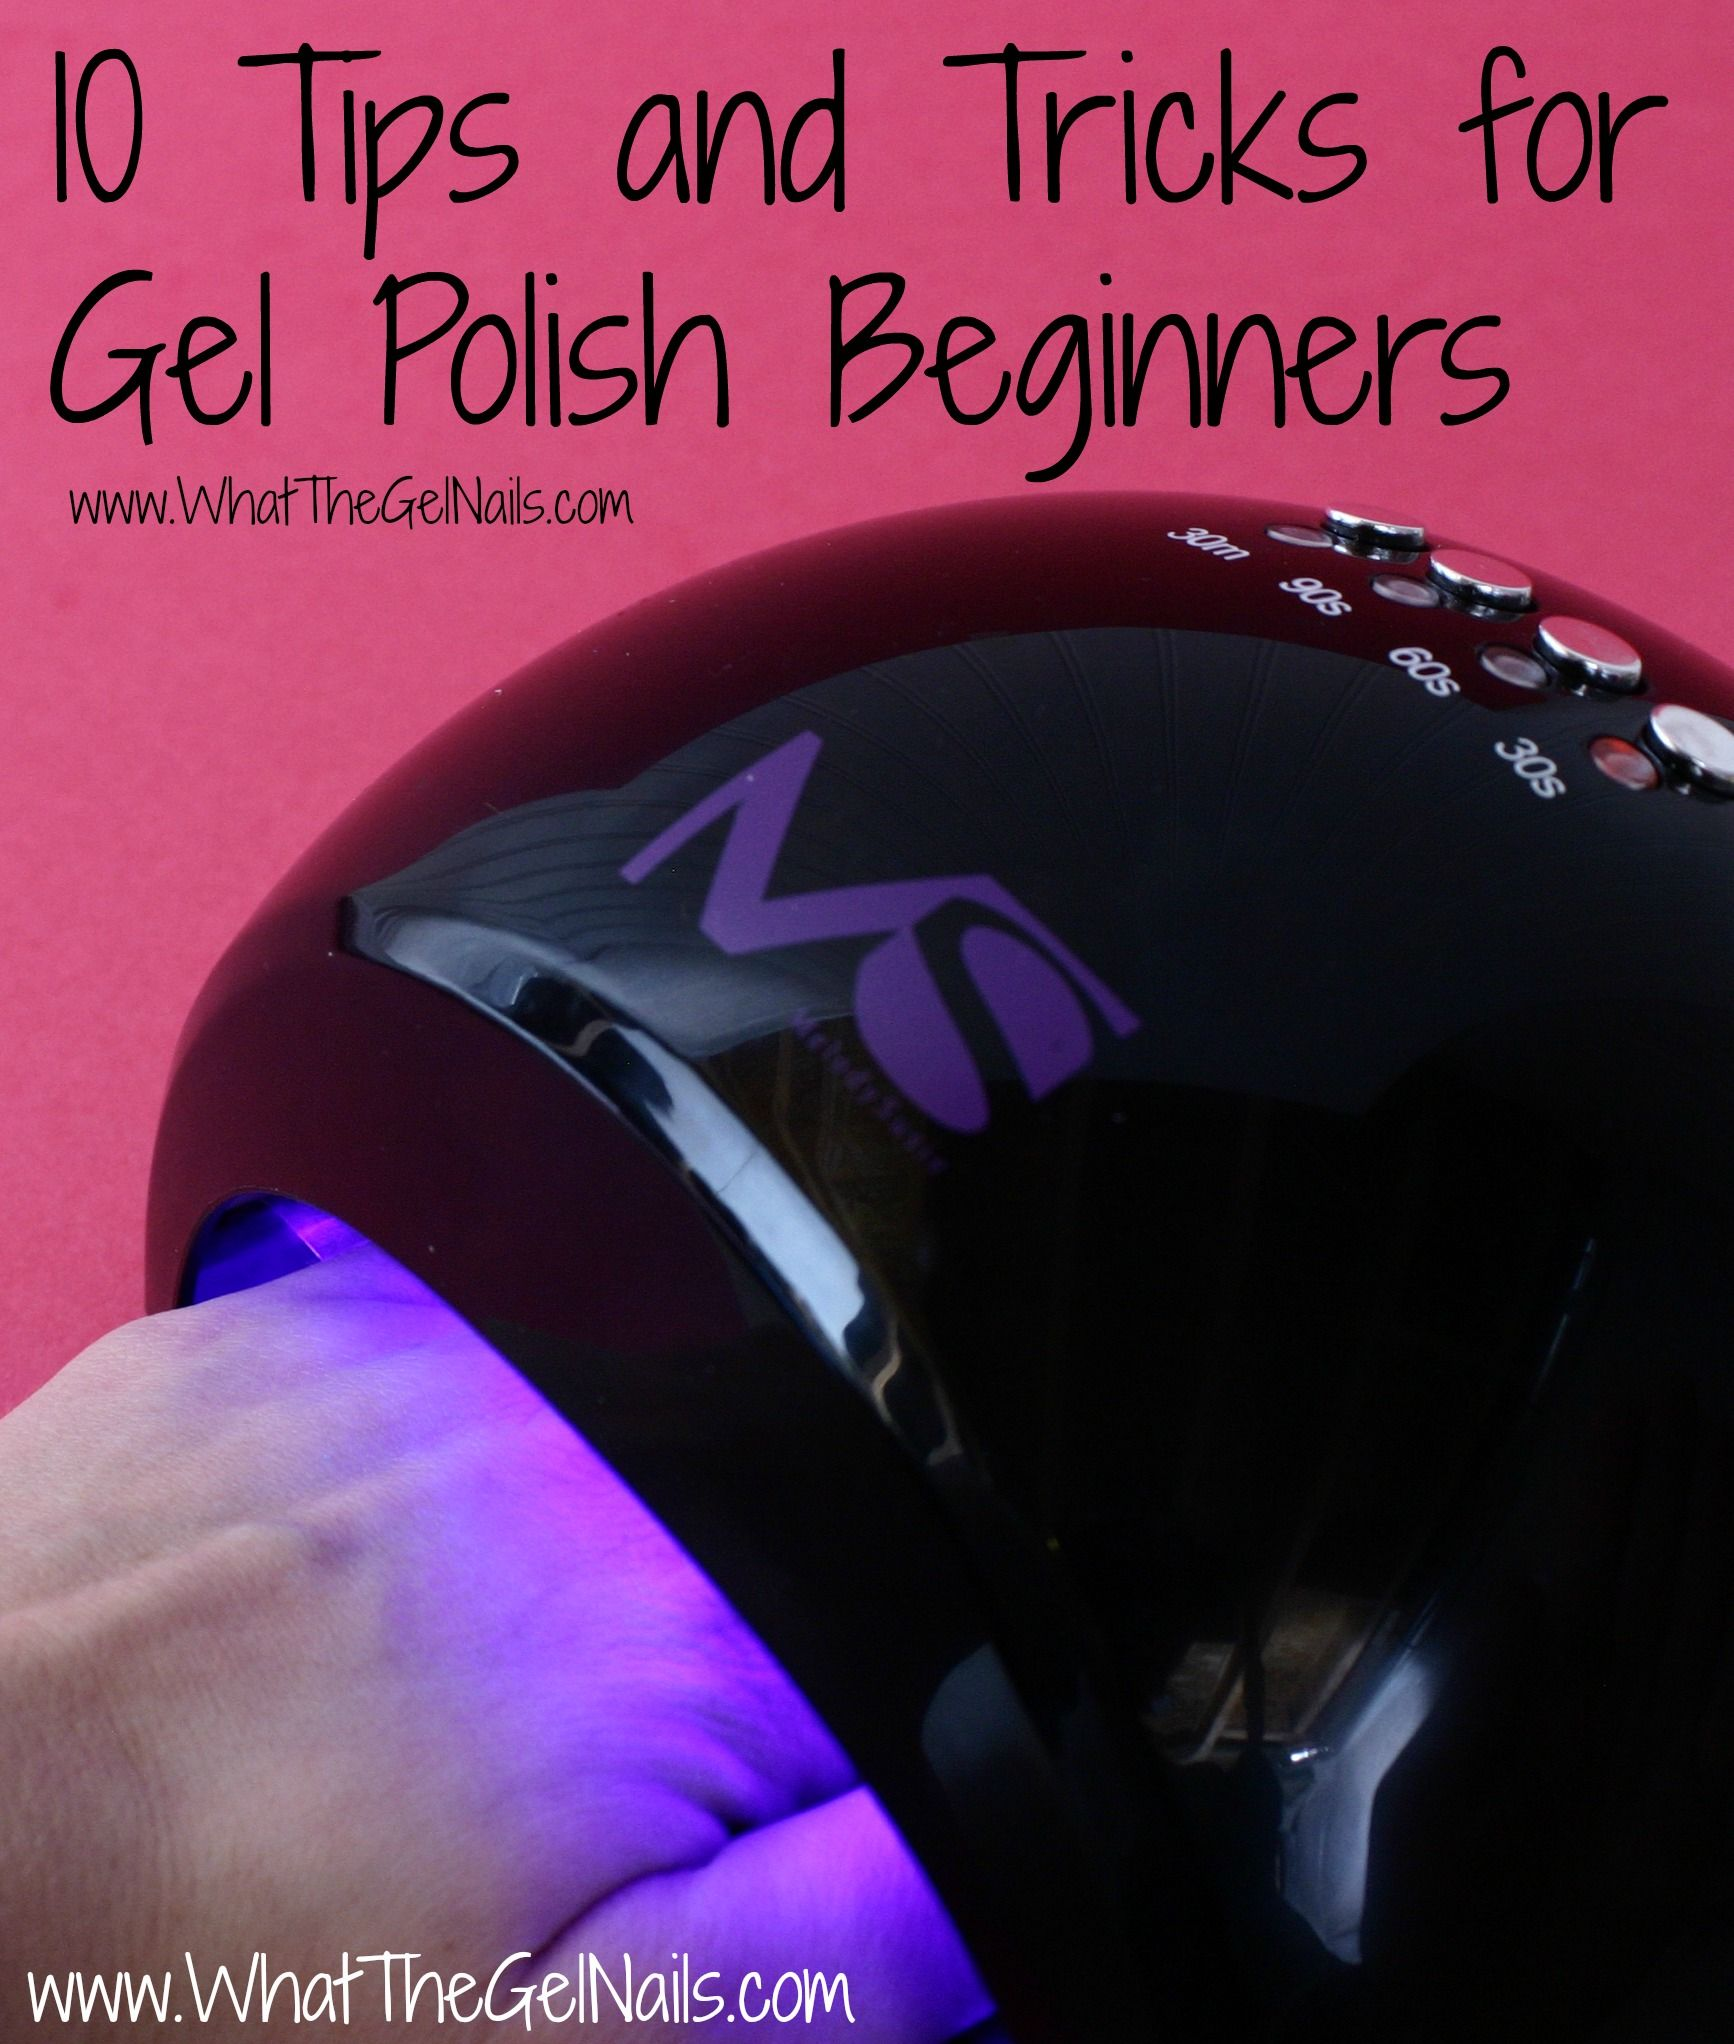 10 Tips and Tricks for Gel Polish Beginners | nails | Pinterest ...